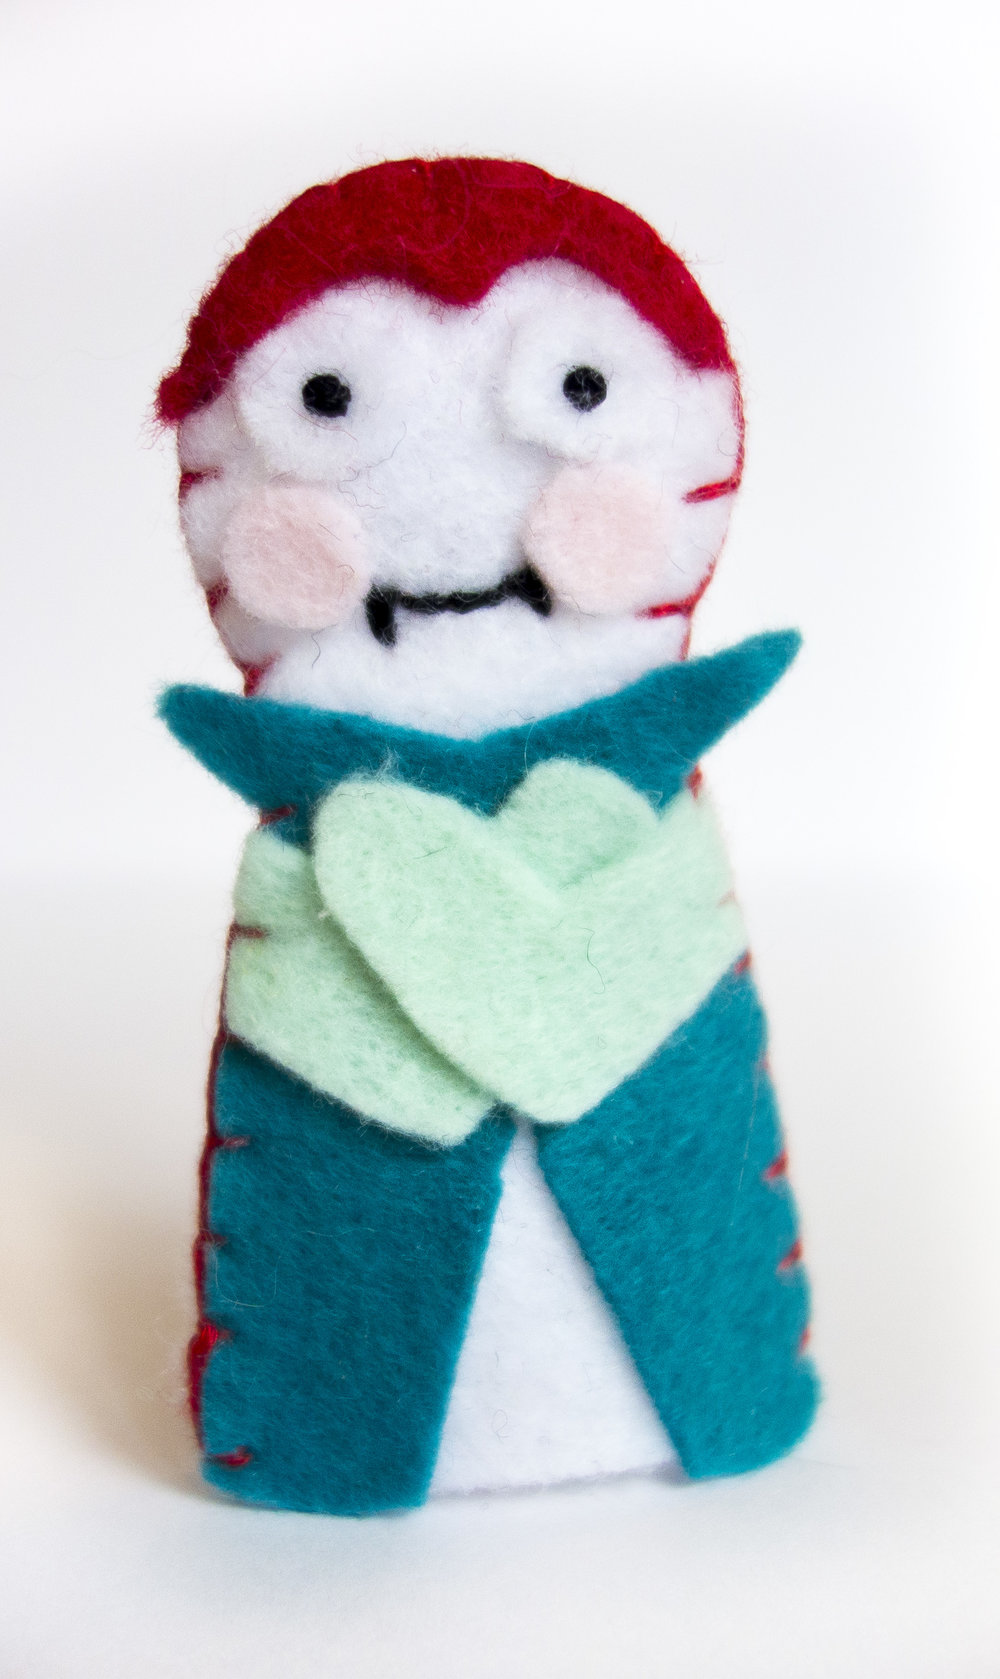 Vampire - No tricks here, just treats. Sweet pink-cheesed smile with a bite, French knot eyes, blanket stitched all along the sides.